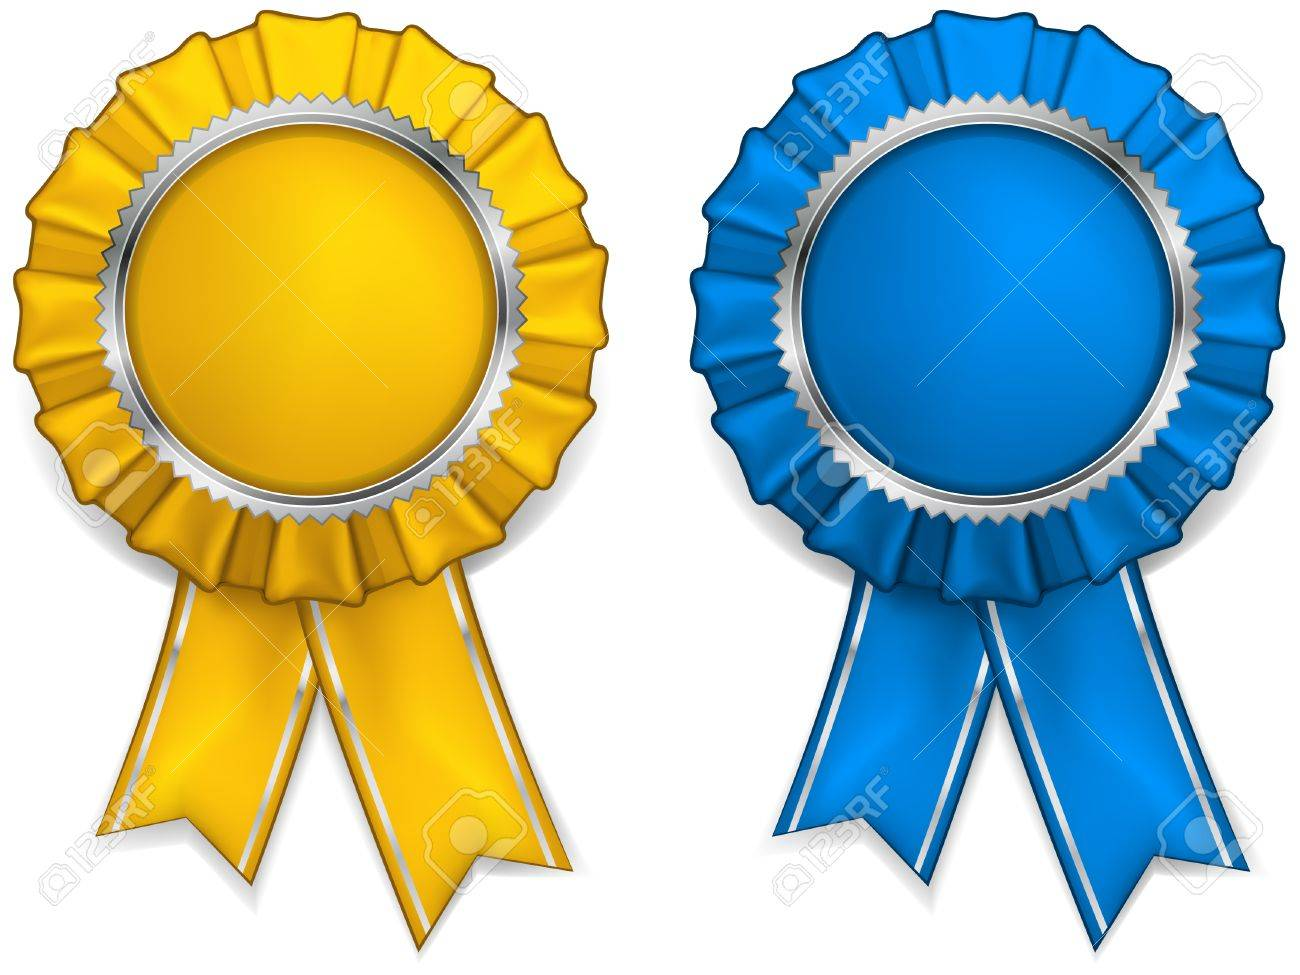 Award yellow and blue rosettes with medals and ribbons.